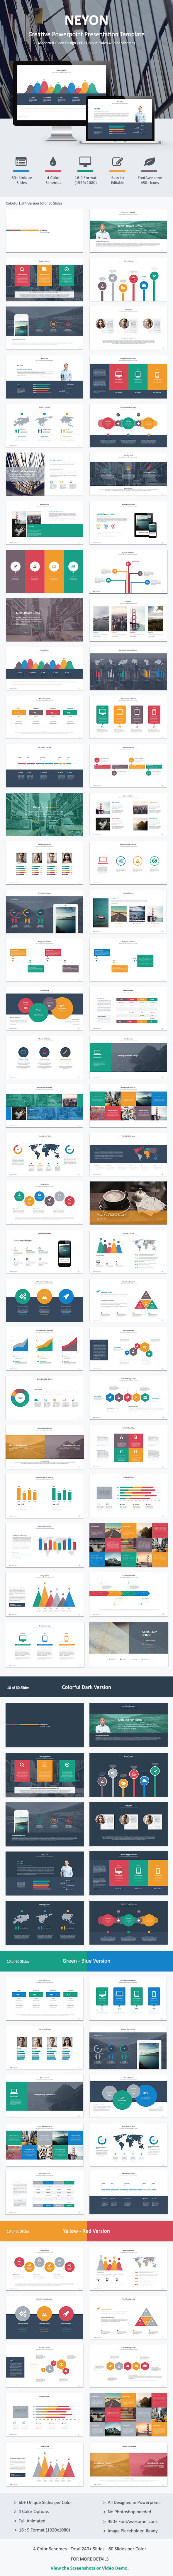 GraphicRiver Neyon Powerpoint Template 8937893